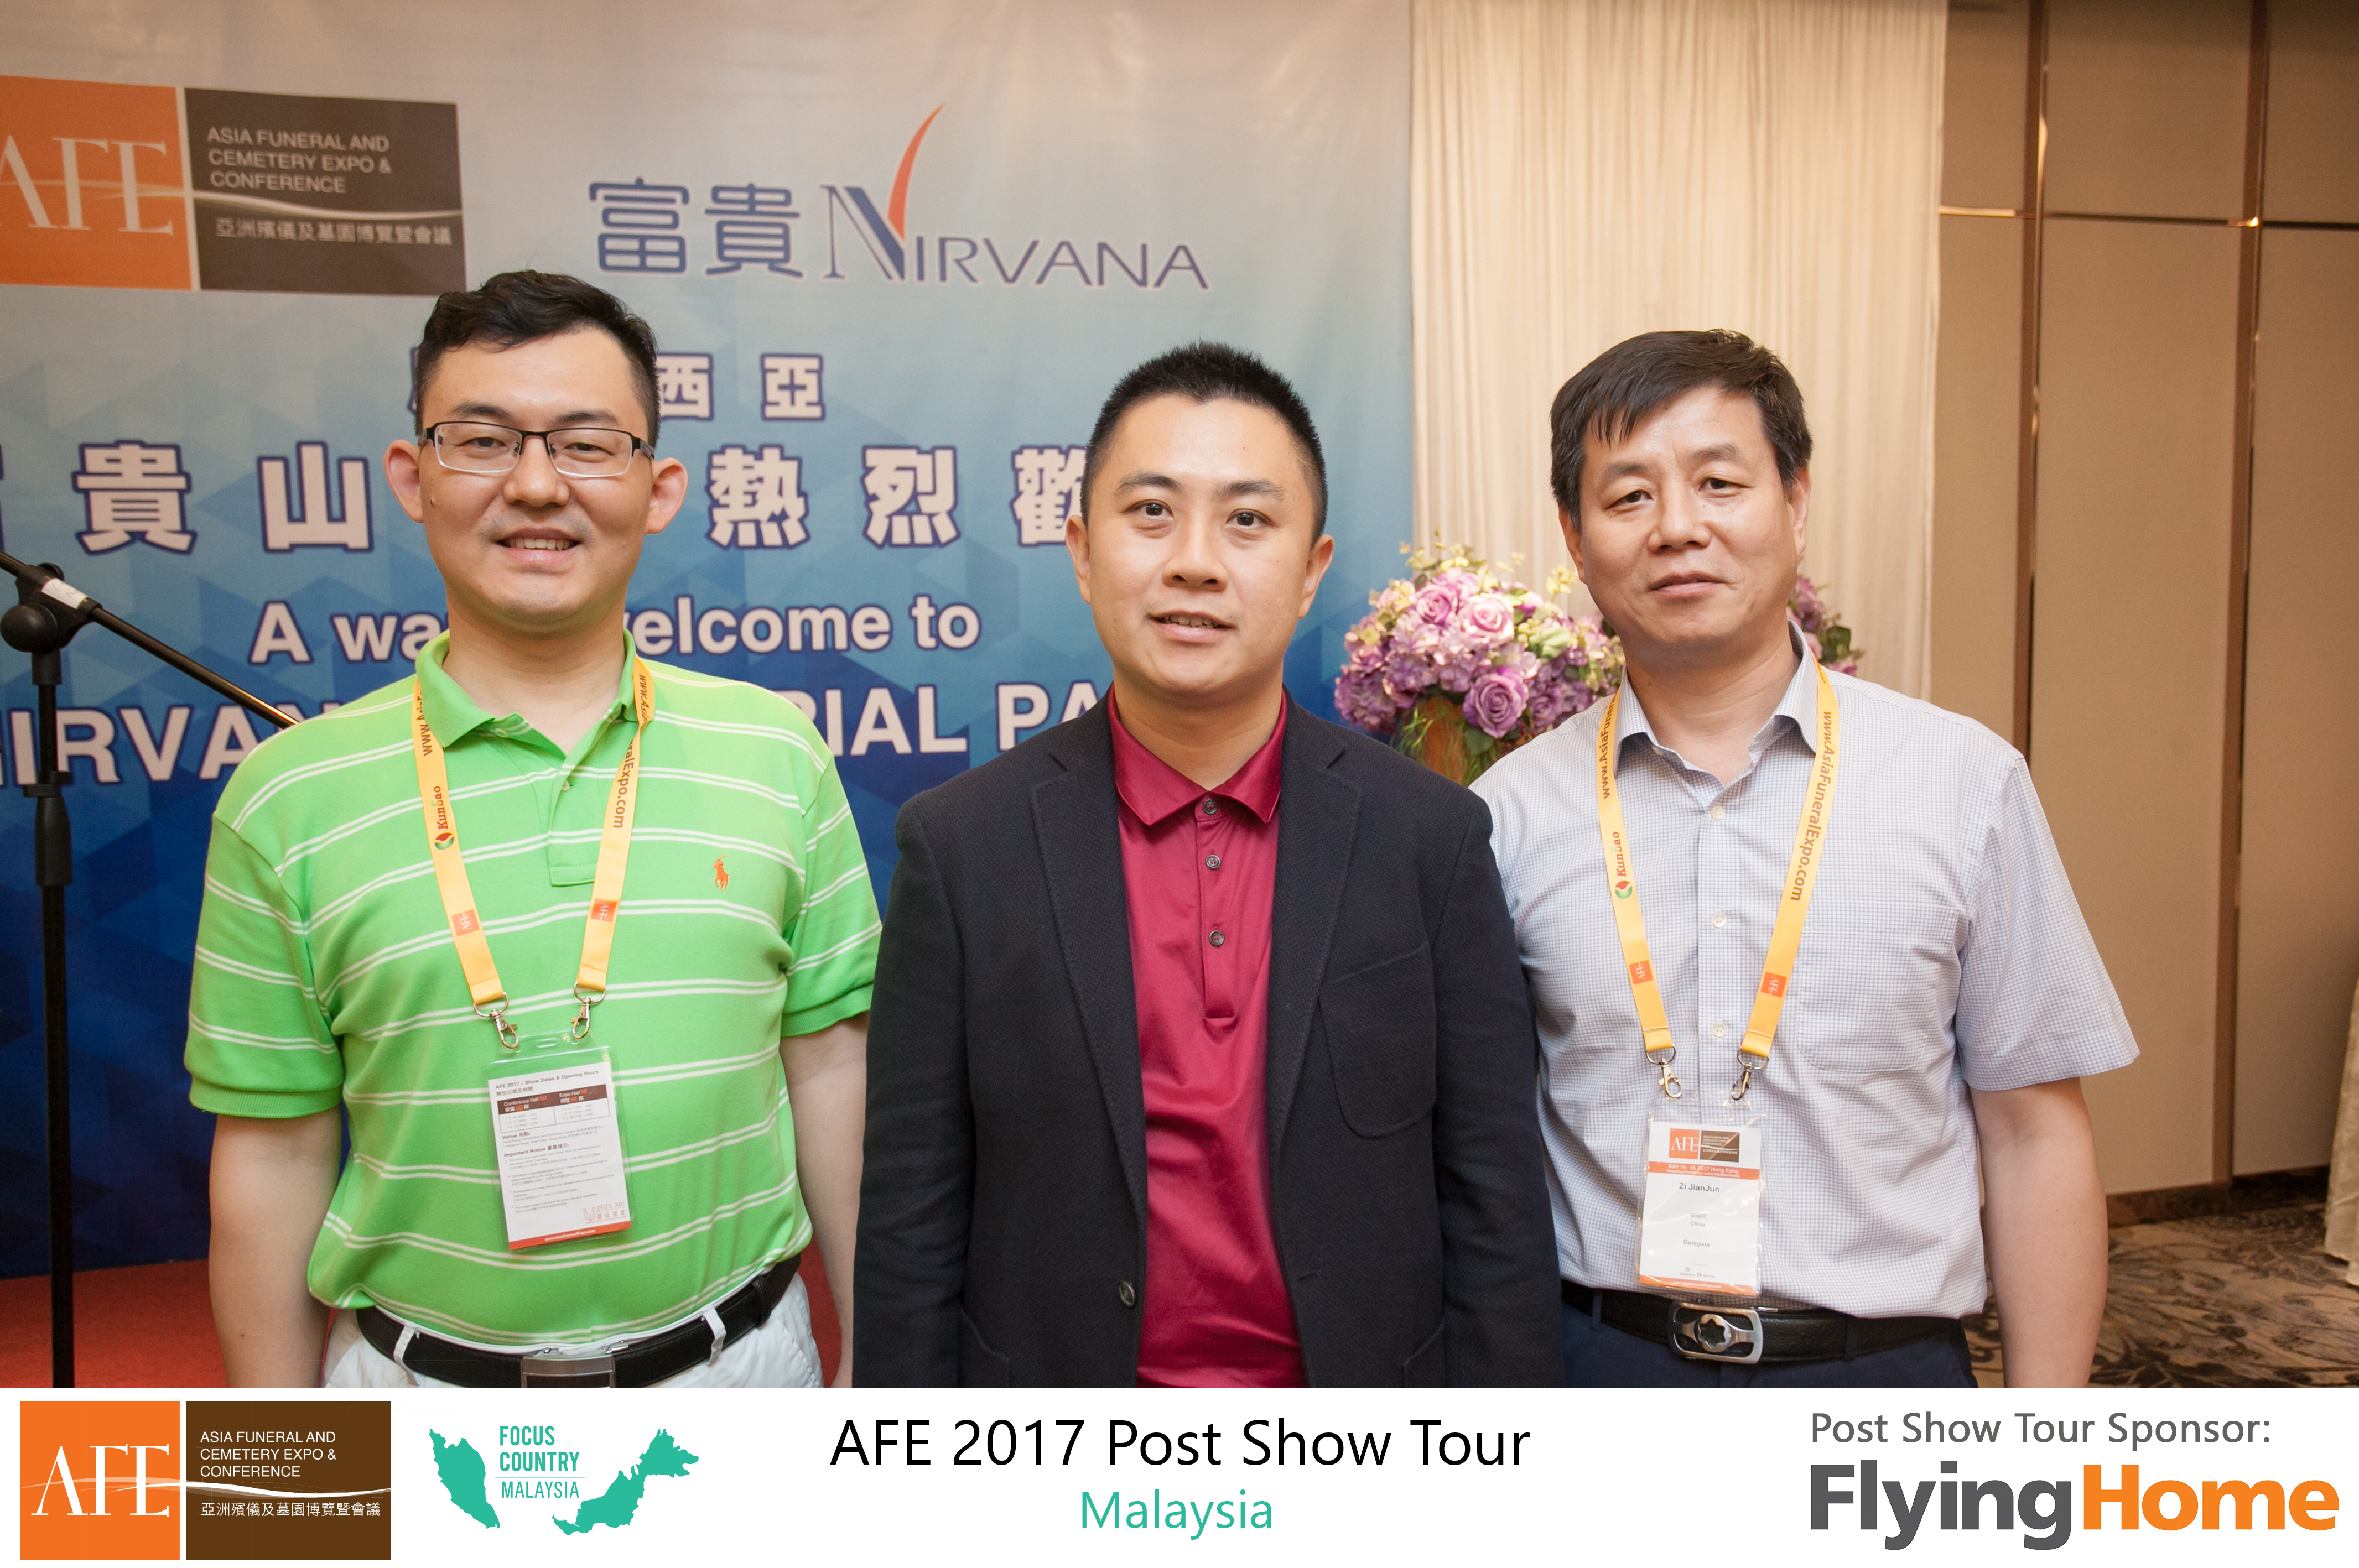 AFE Post Show Tour 2017 Day 2 - 30